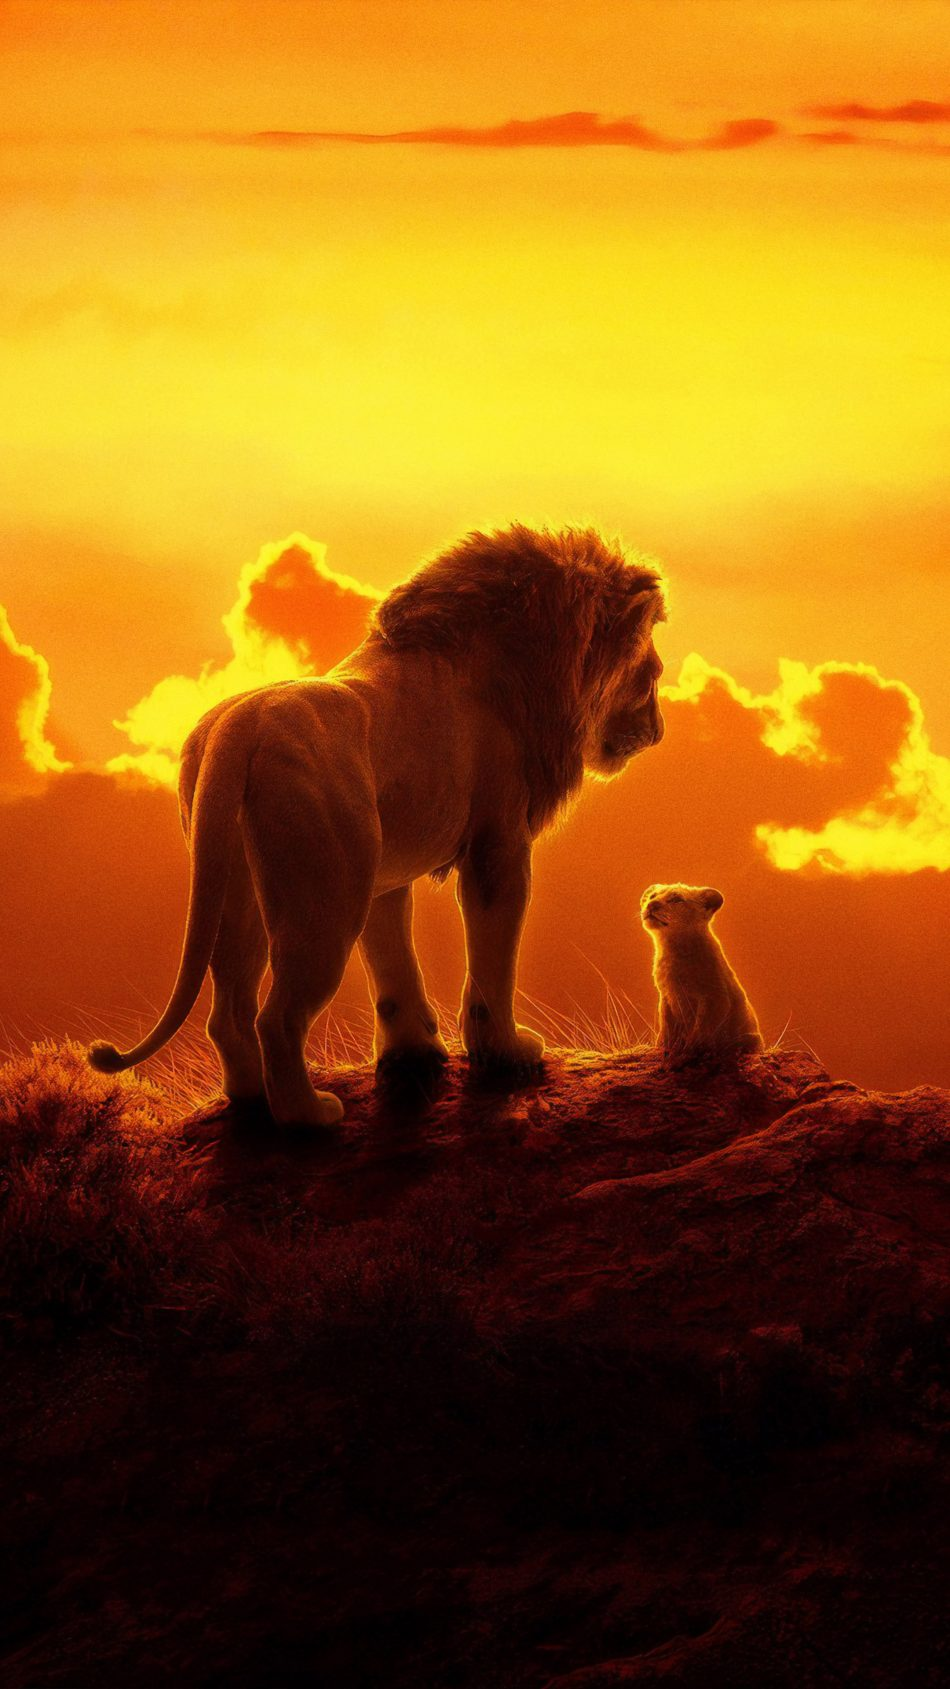 The Lion King Animation 2019 4K Ultra HD Mobile Wallpaper